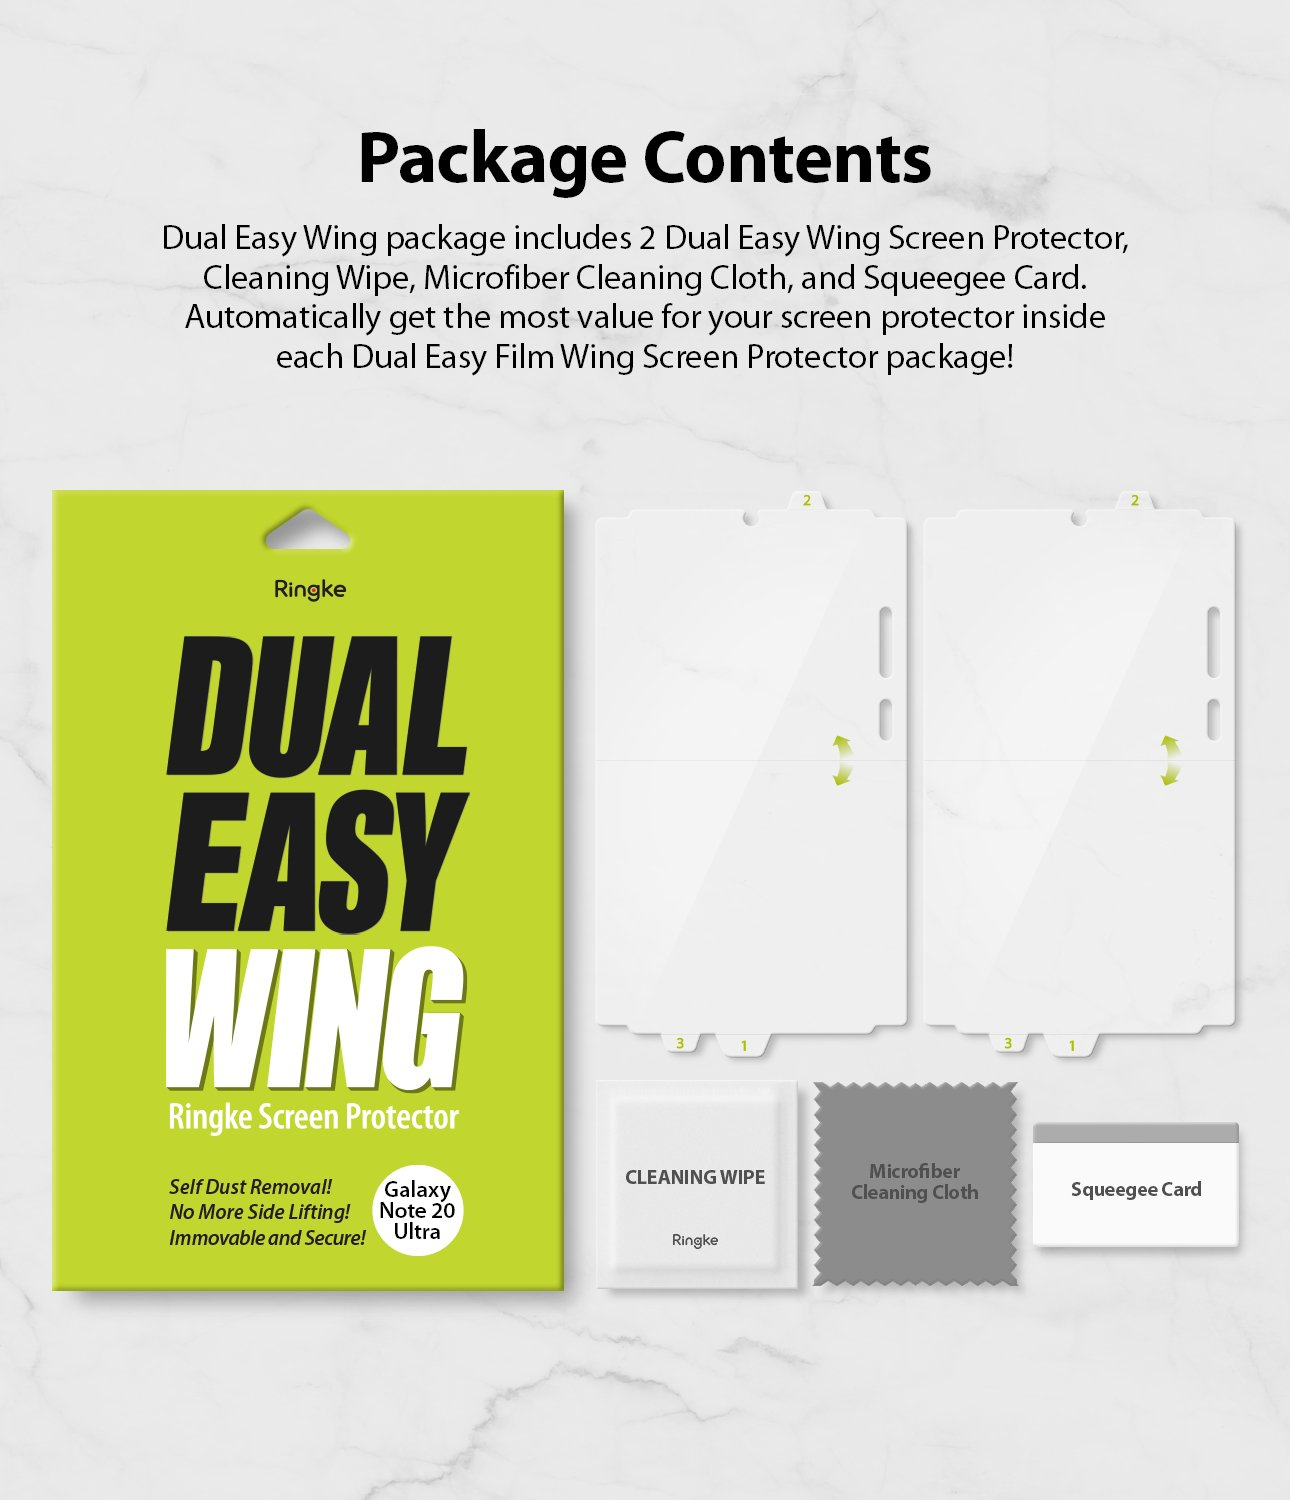 Samsung Galaxy Note 20 Ultra Ringke Dual Easy Wing Screen Protector (2 Pack)